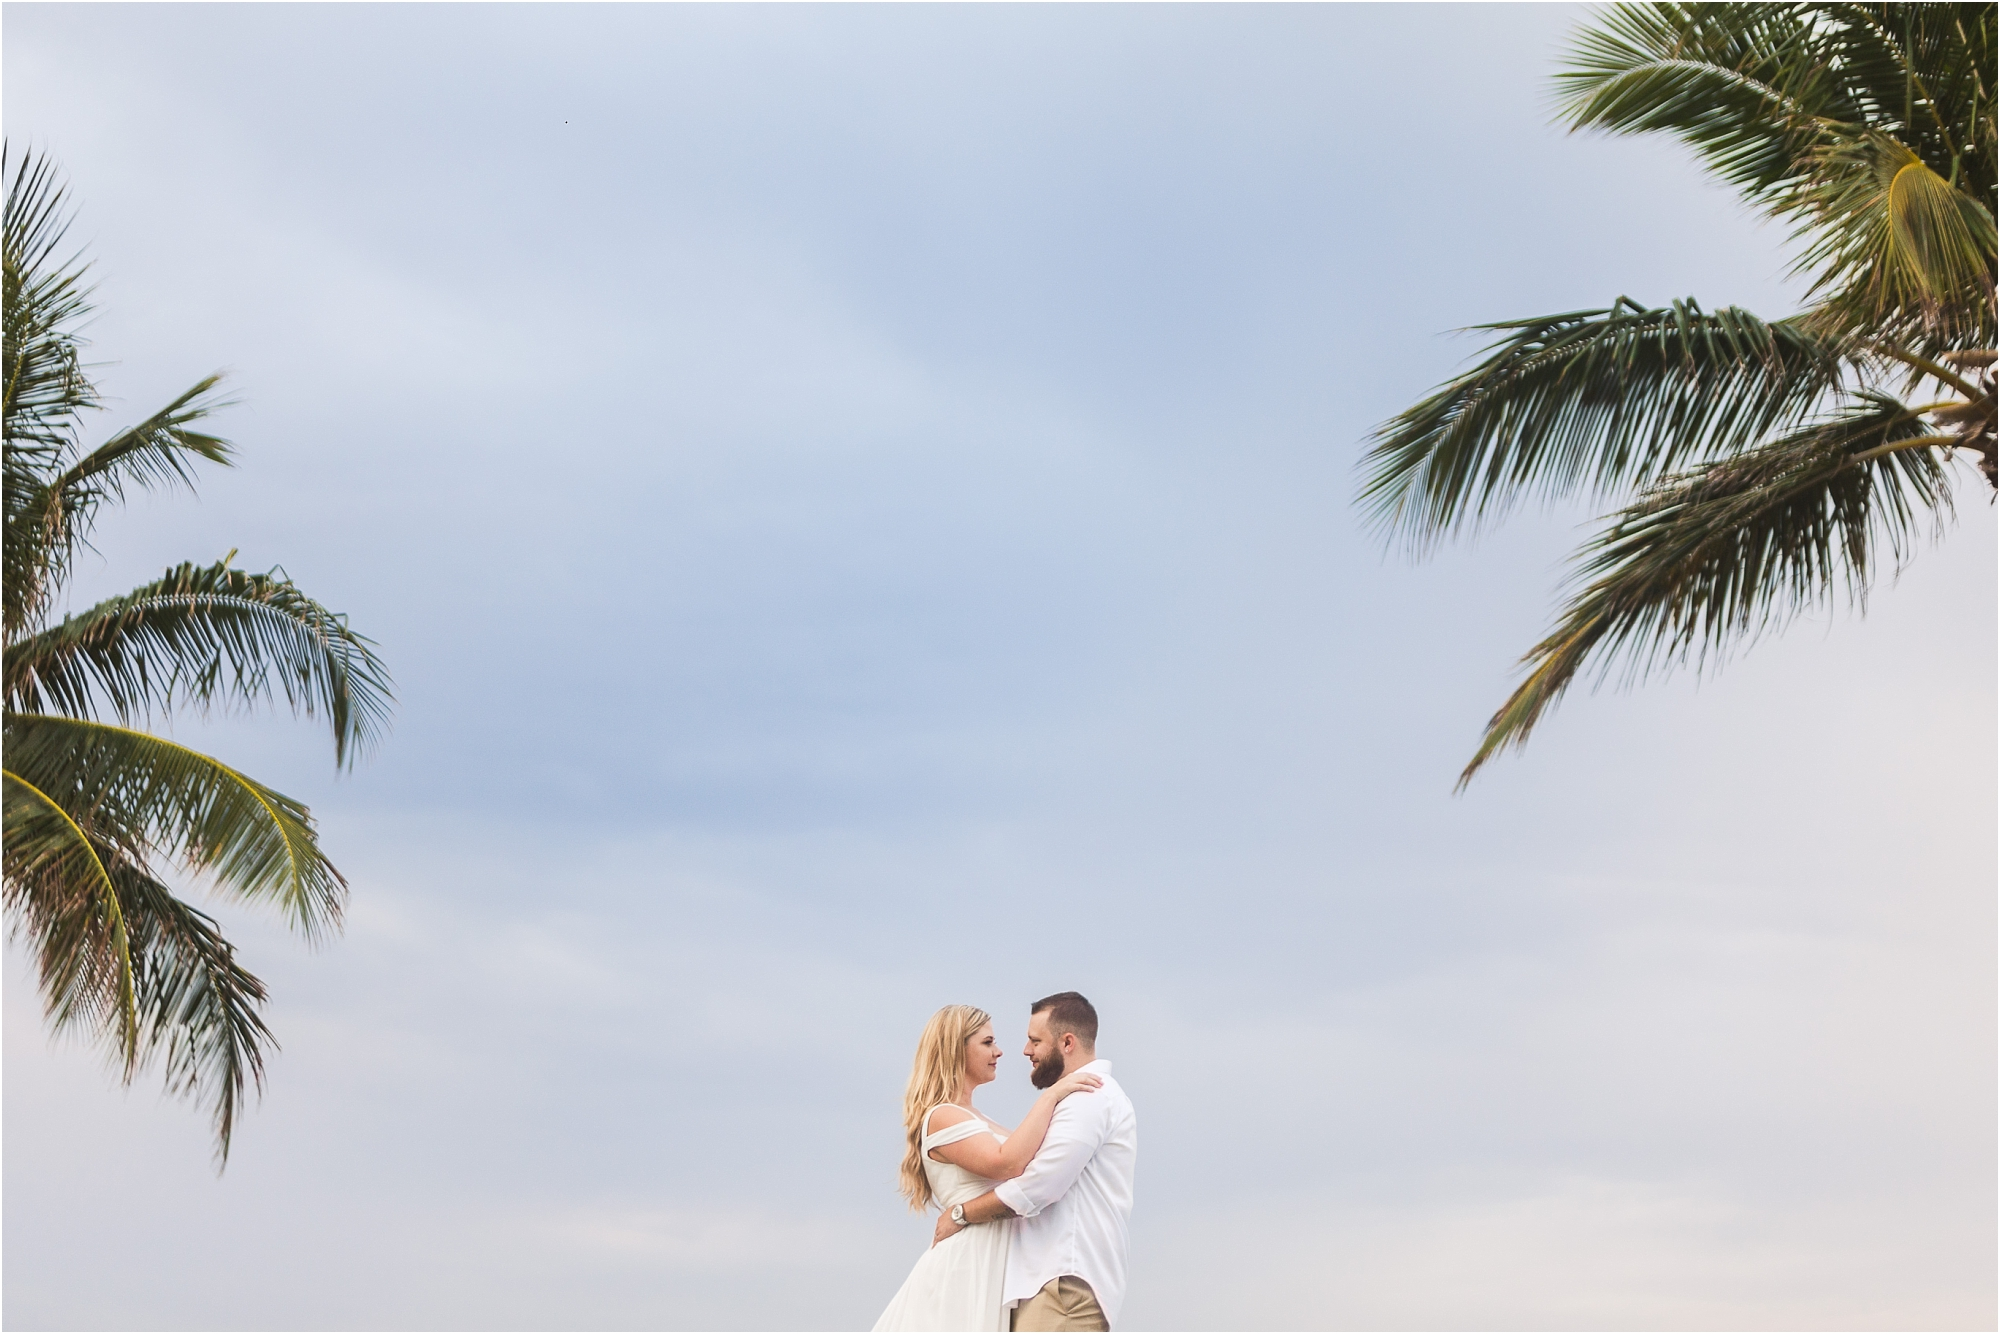 south pointe park-anniversary outdoor photo session-jessenia-gonzalez-weddings_1318.jpg